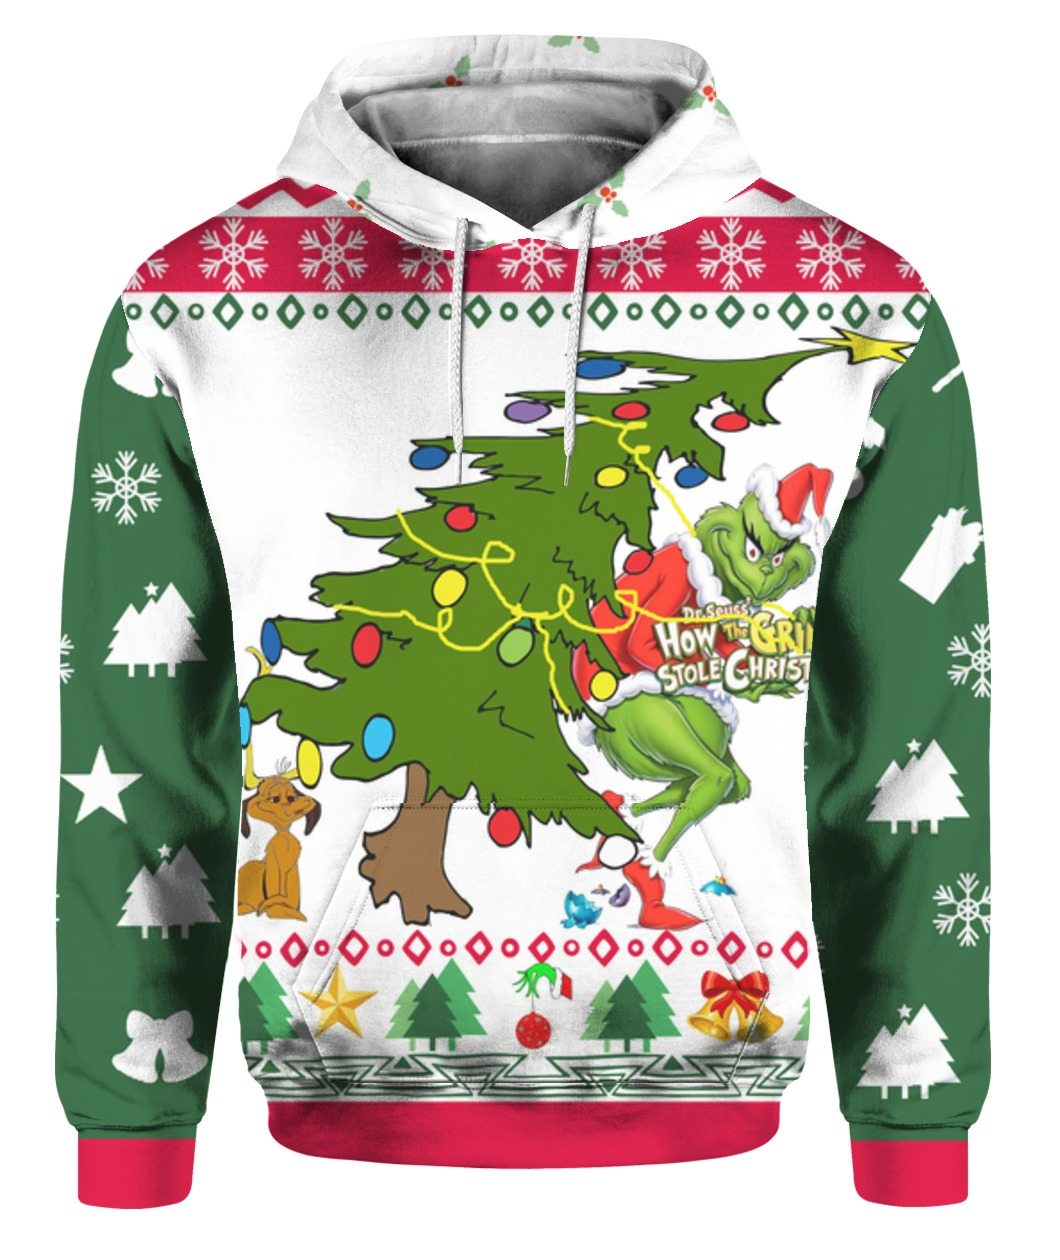 The grinch stole christmas tree full printing ugly christmas sweater - maria